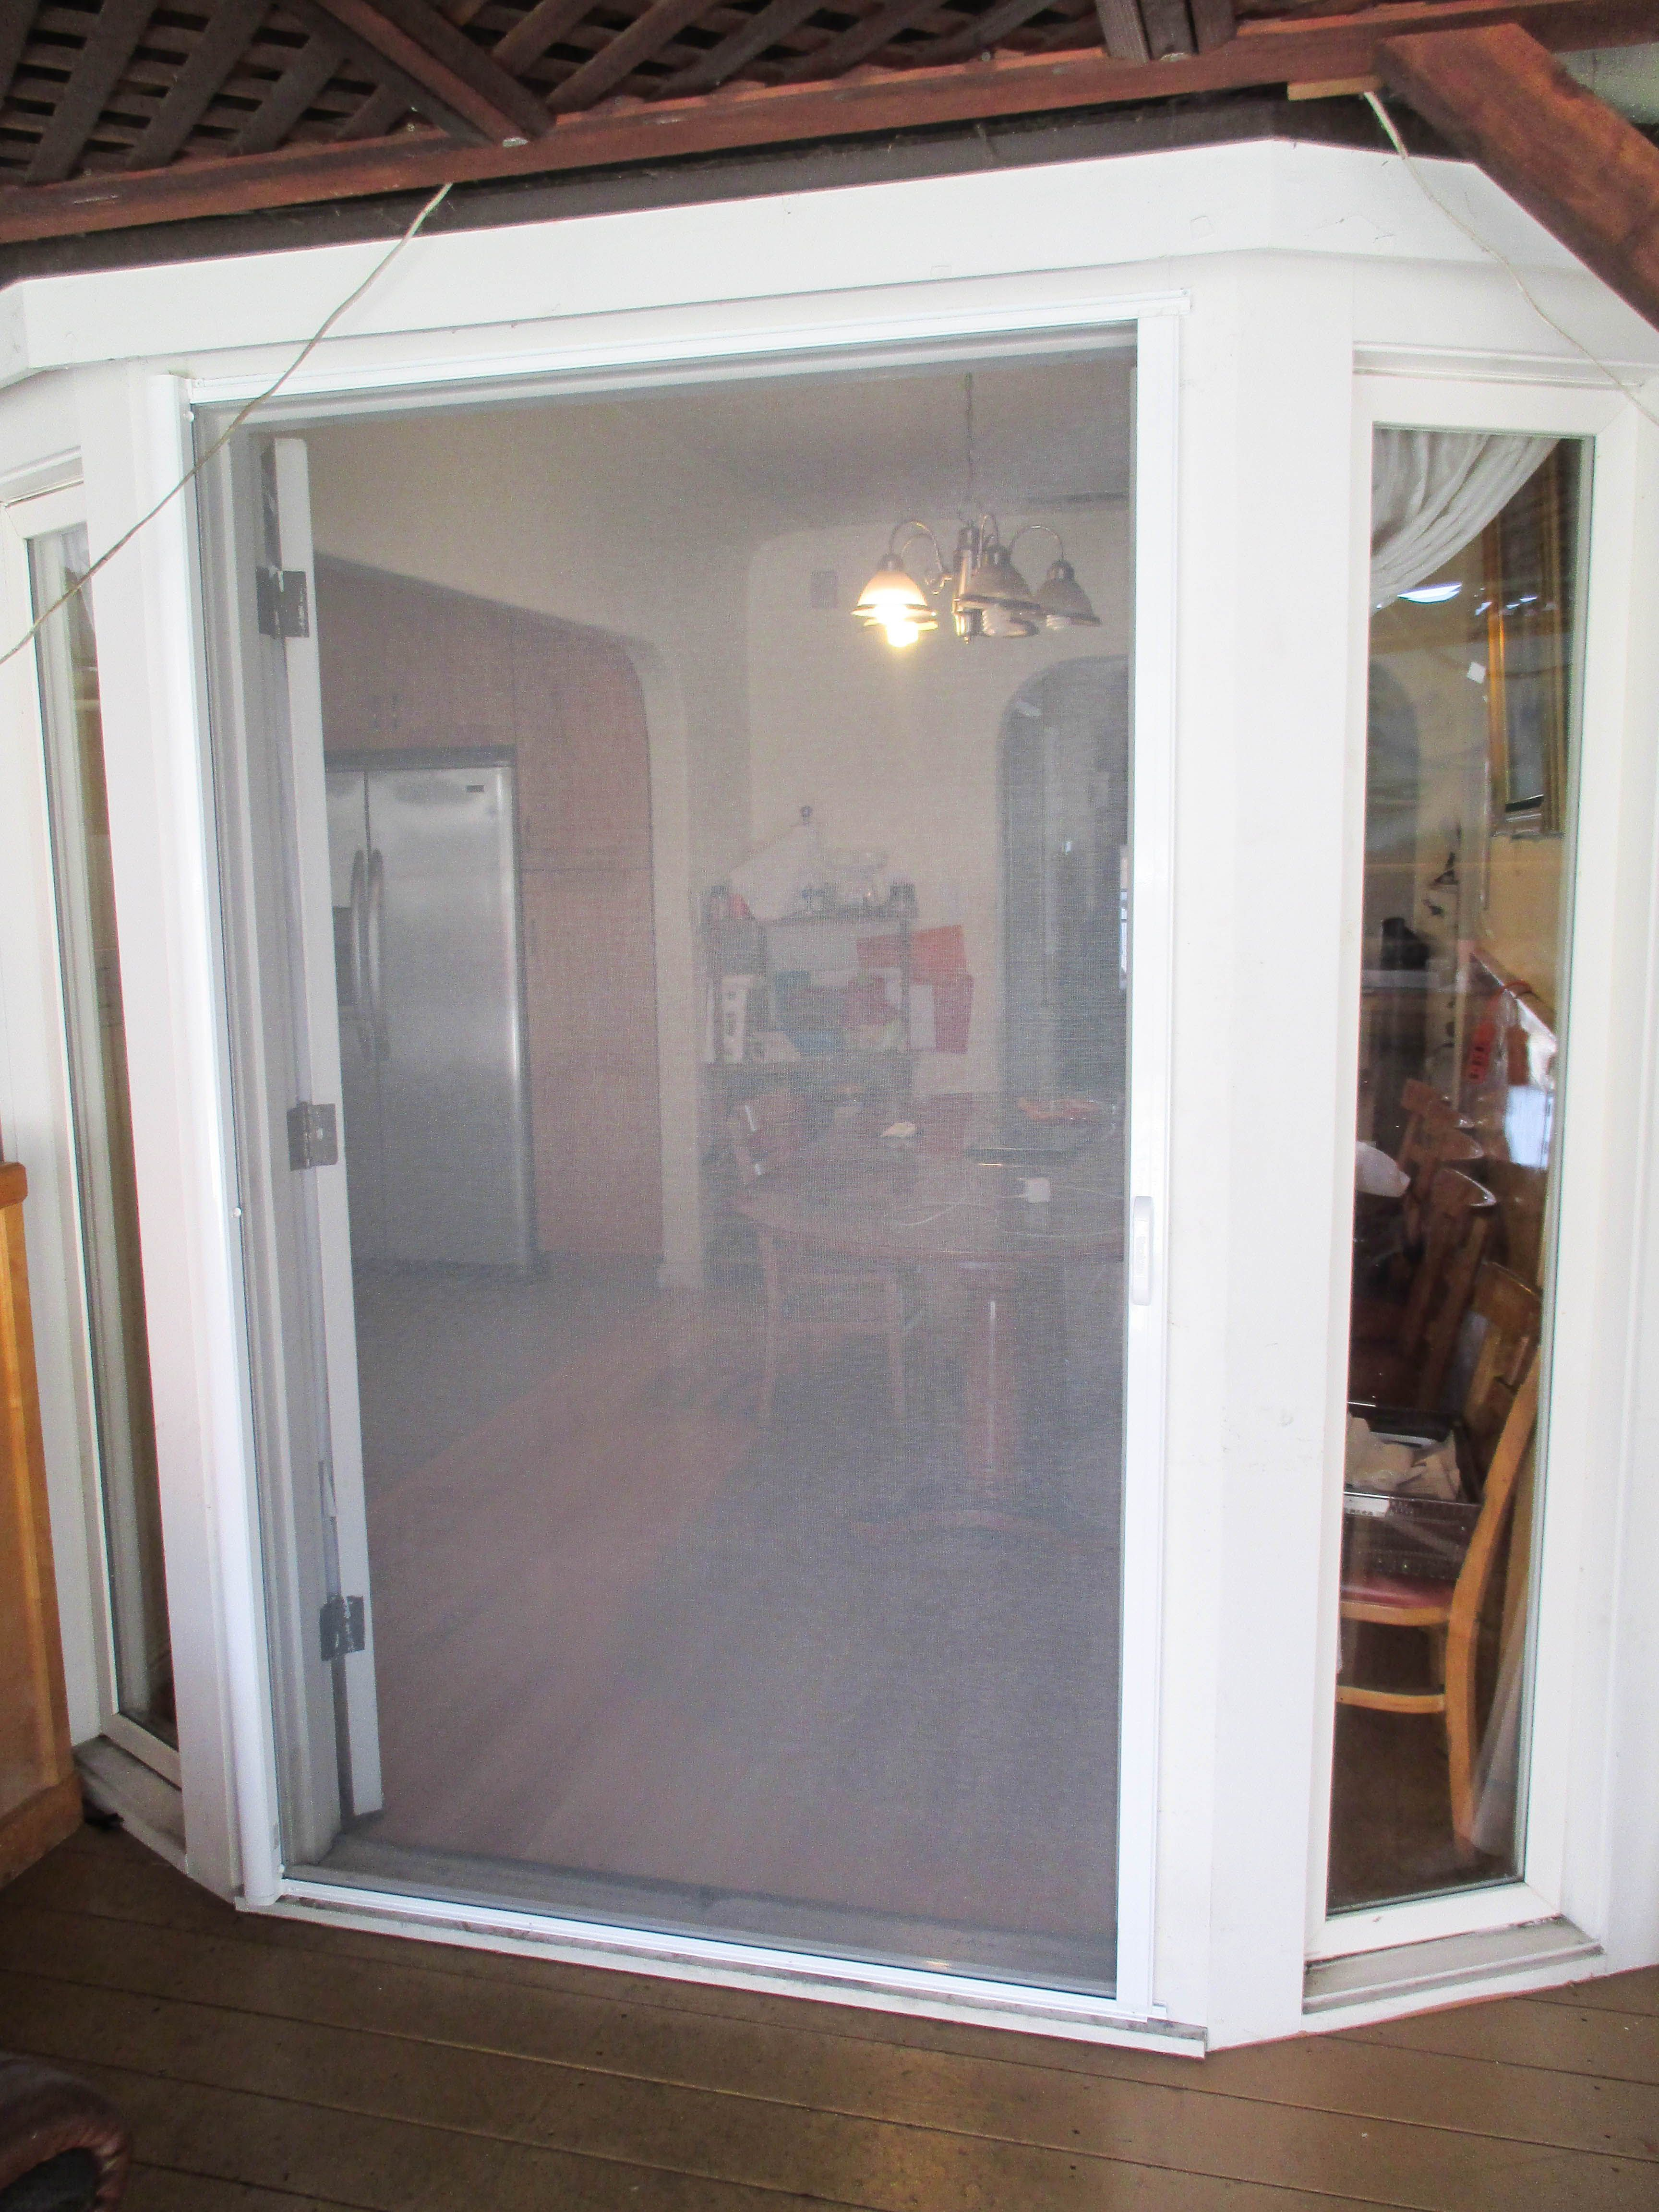 Check out this whiteframed single Retractable Screen Door